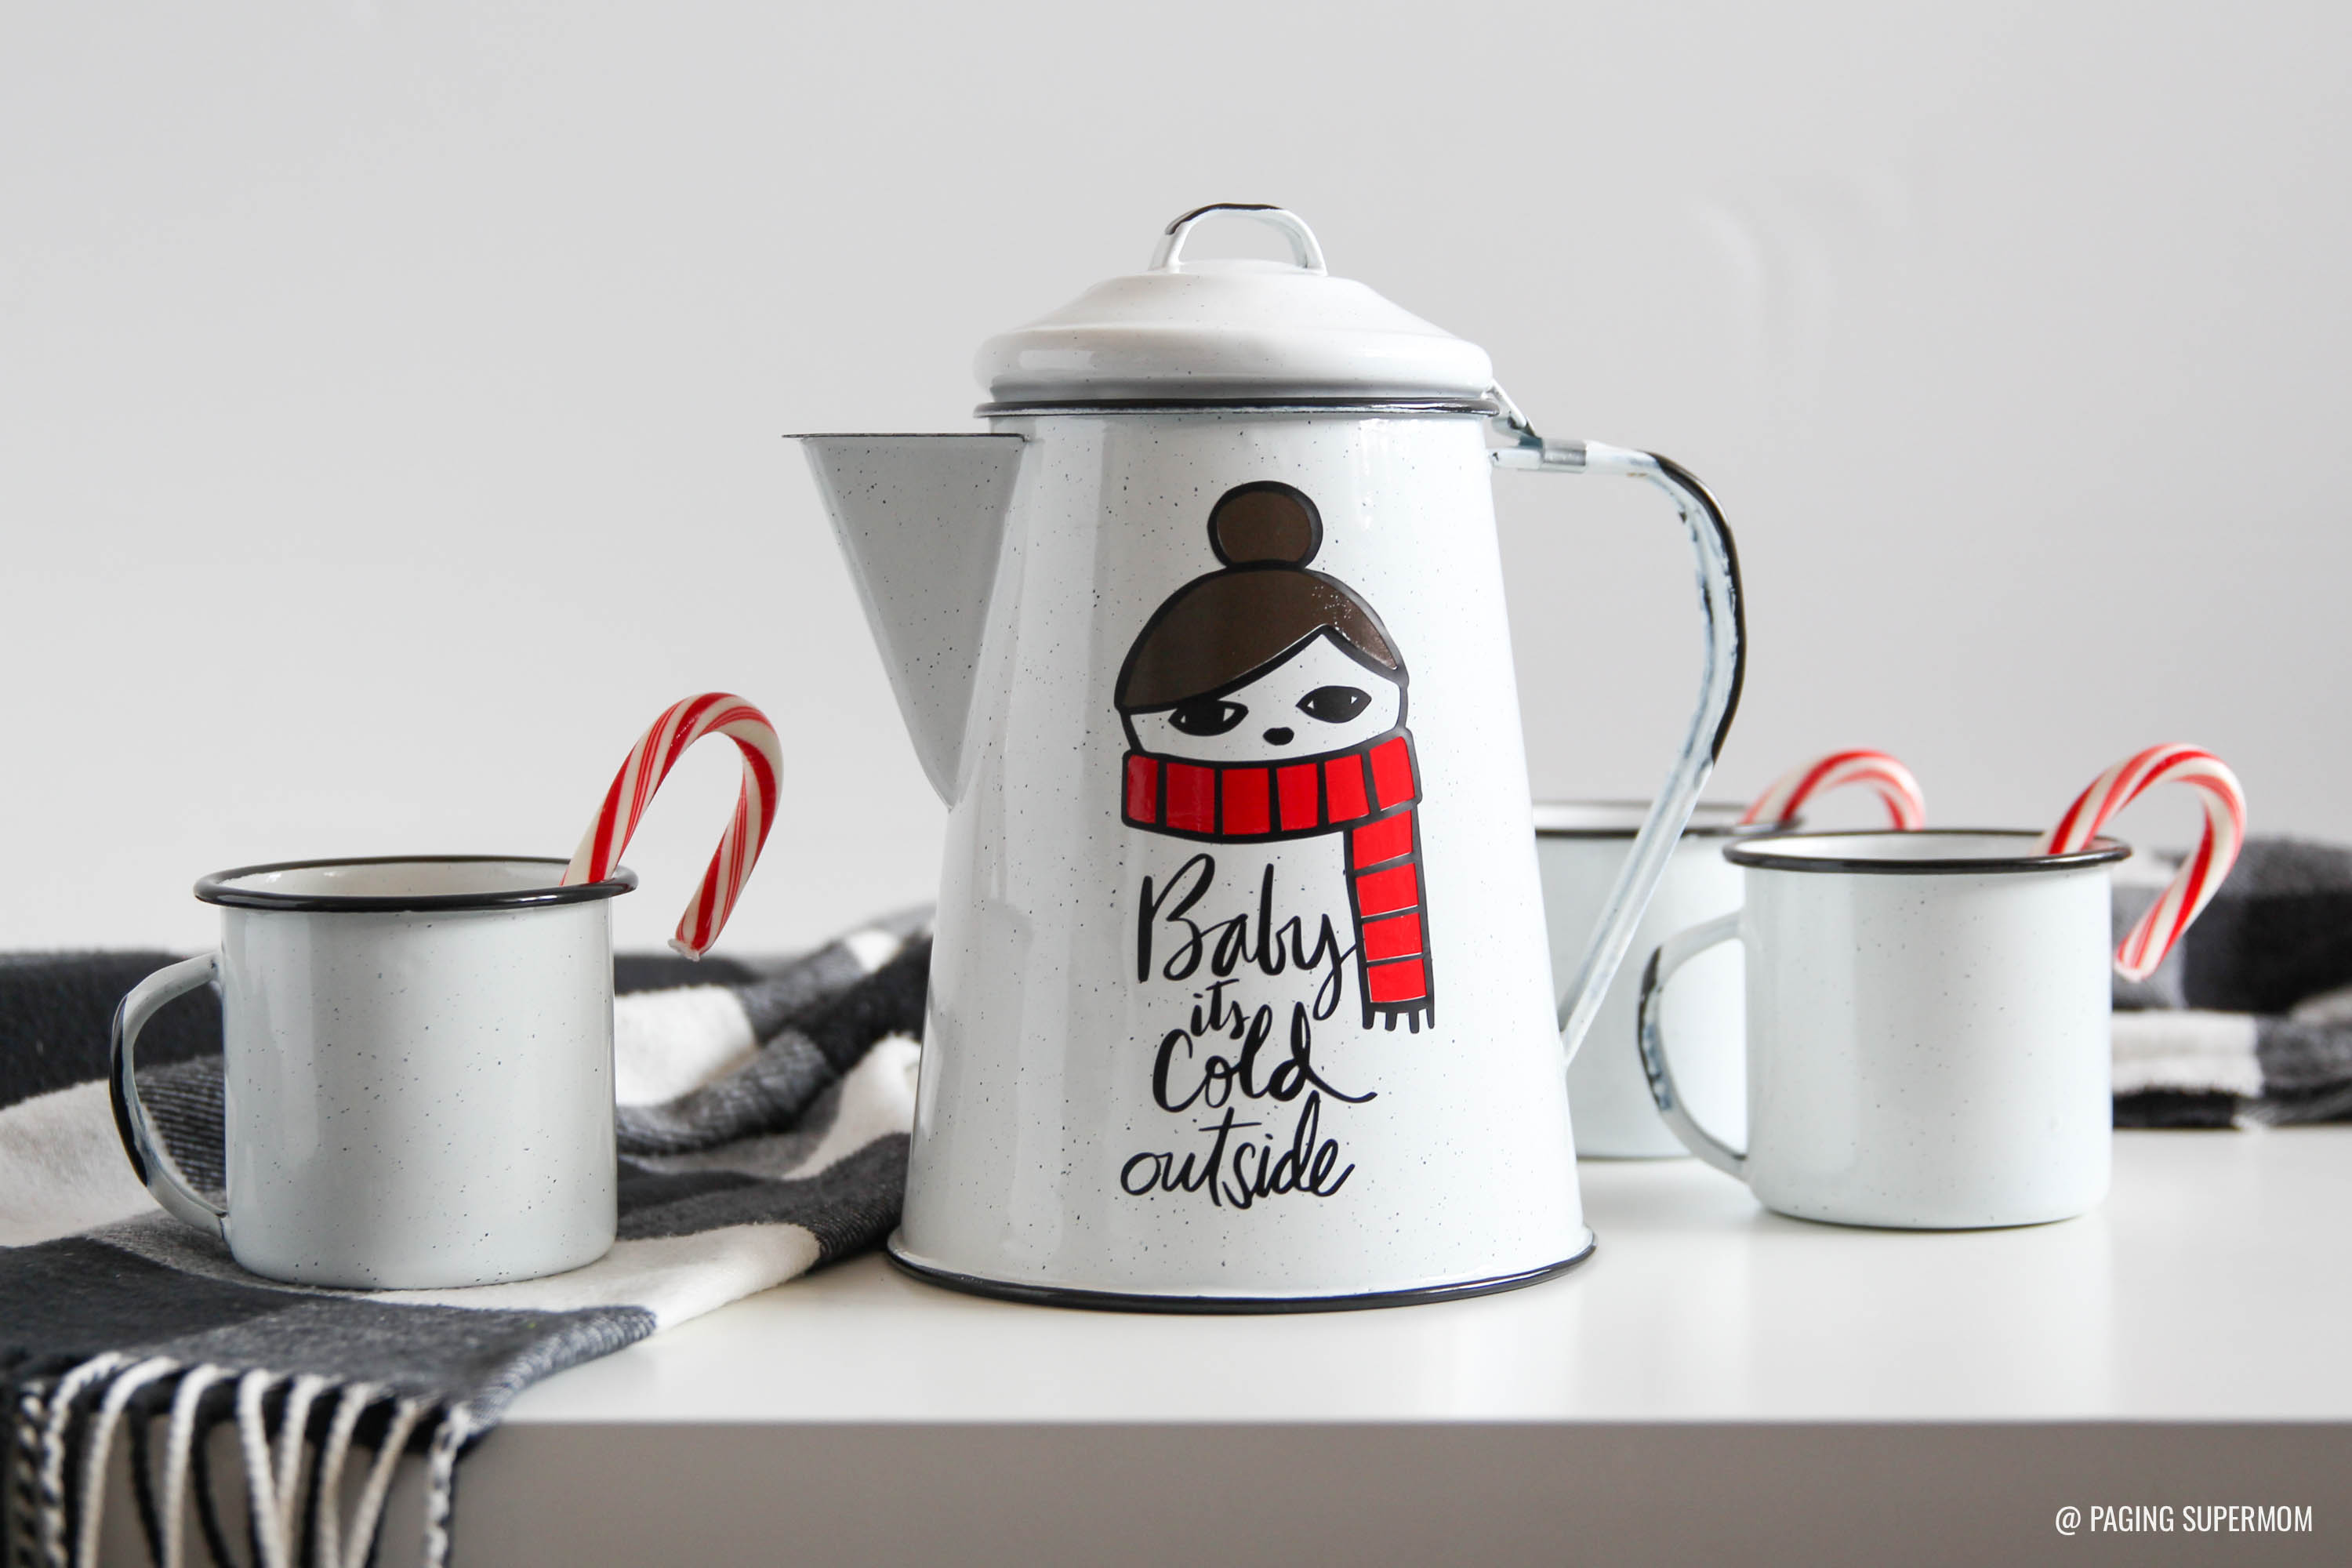 Baby It's Cold Outside - Hot Cocoa Kettle and Mug Set - DIY Christmas Gift Ideas via @PagingSupermom